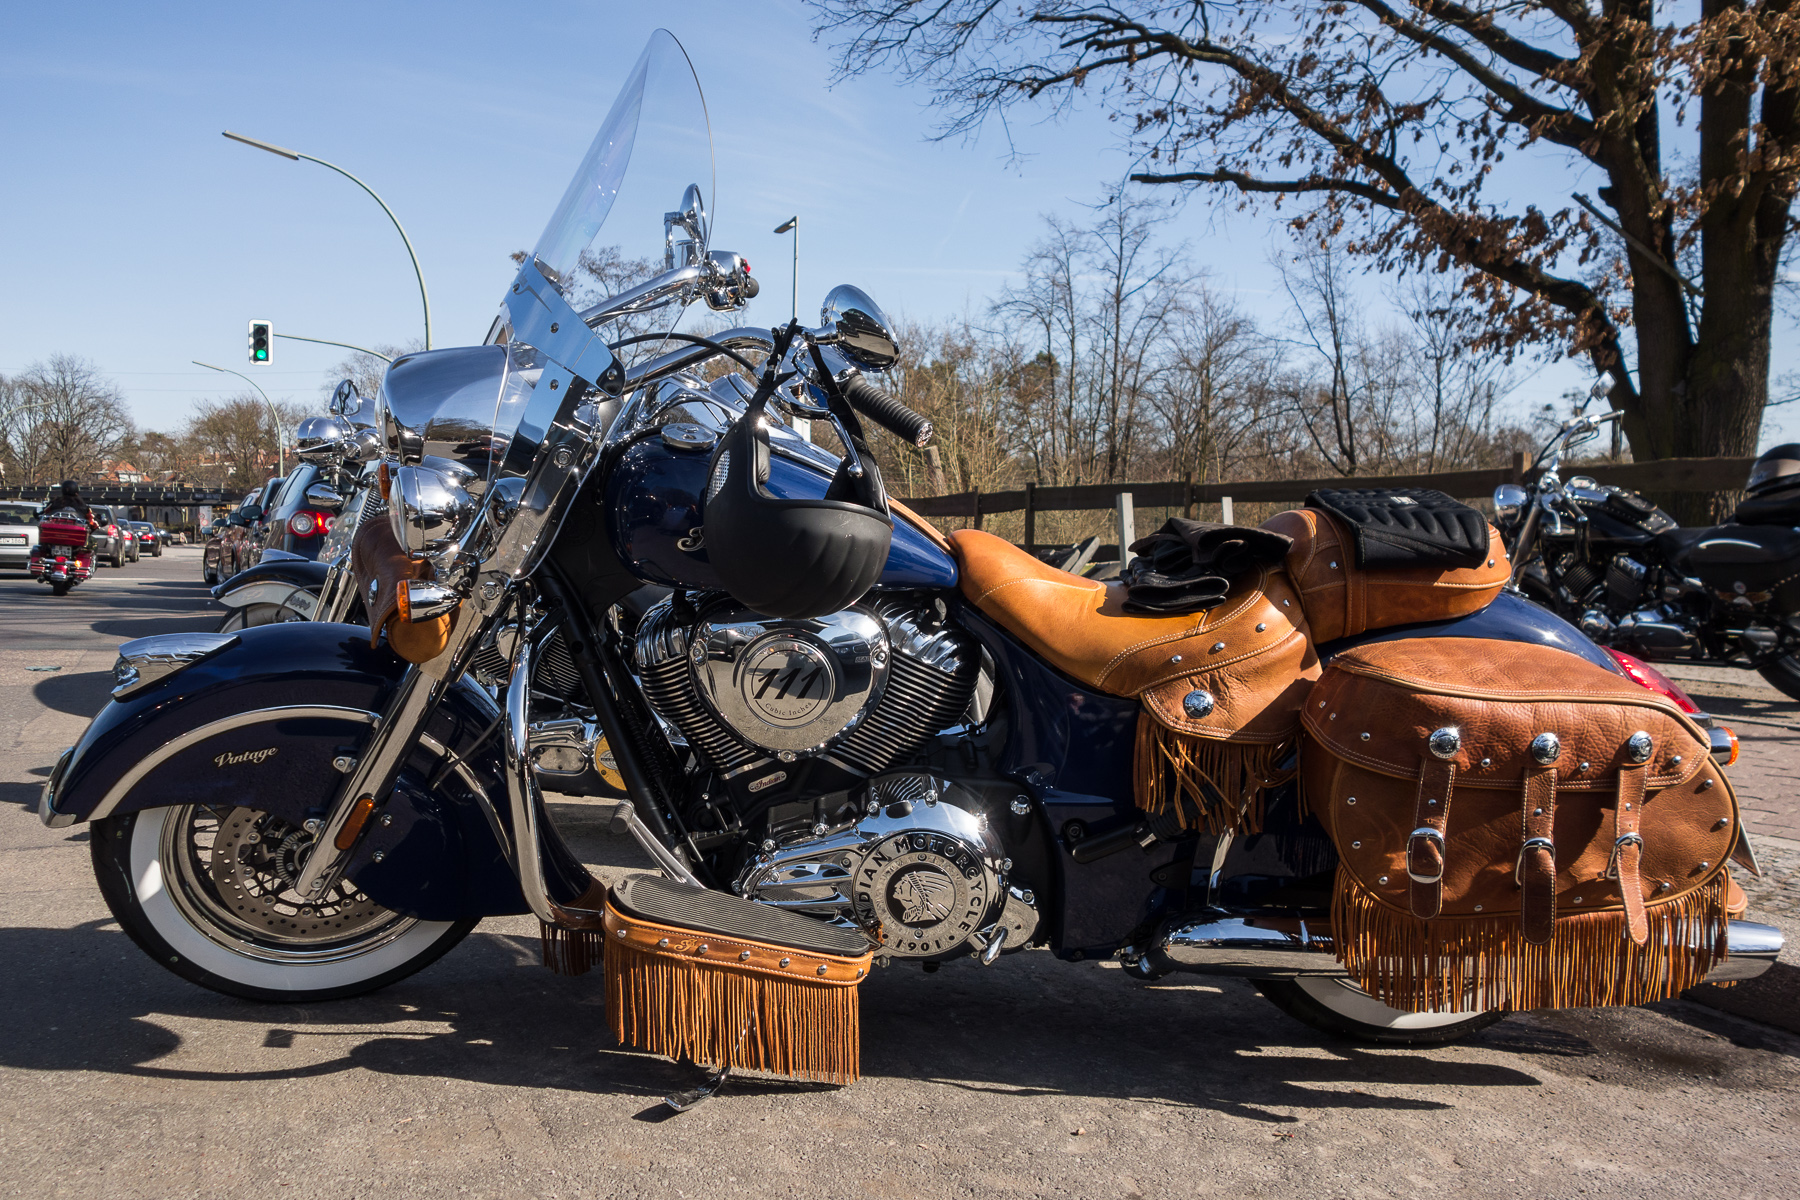 Indian Chief Deluxe 2011 images #97859